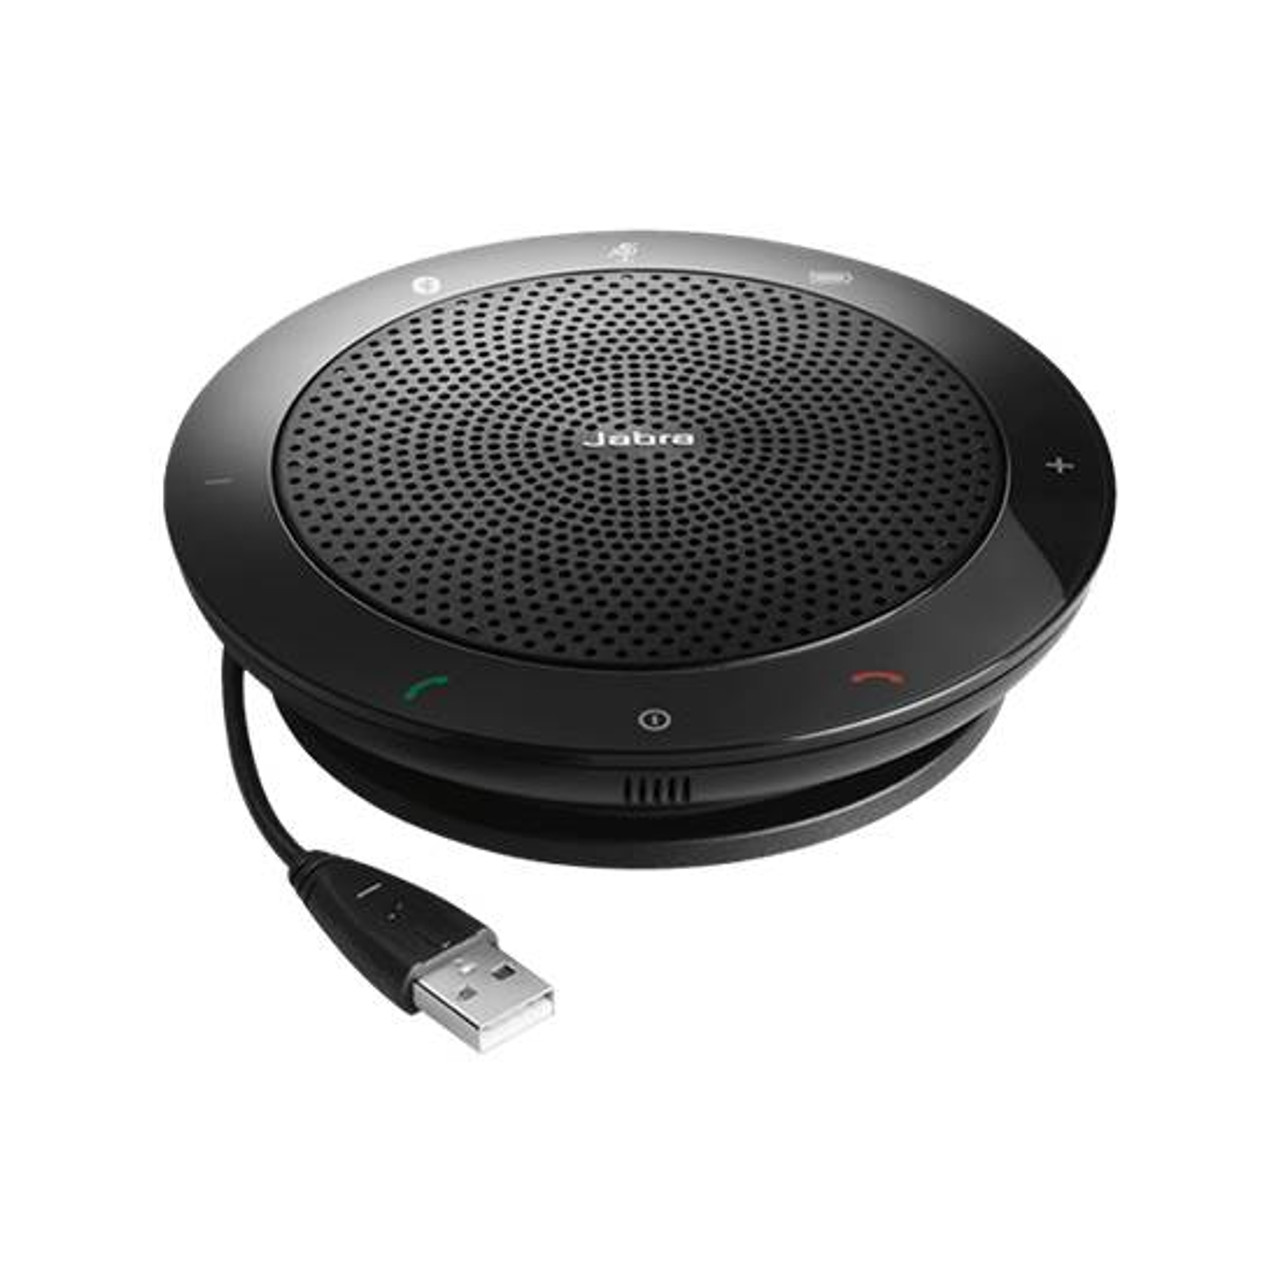 Image for Jabra SPEAK 510+ MS USB-Conference solution 360-degree Microphone CX Computer Superstore